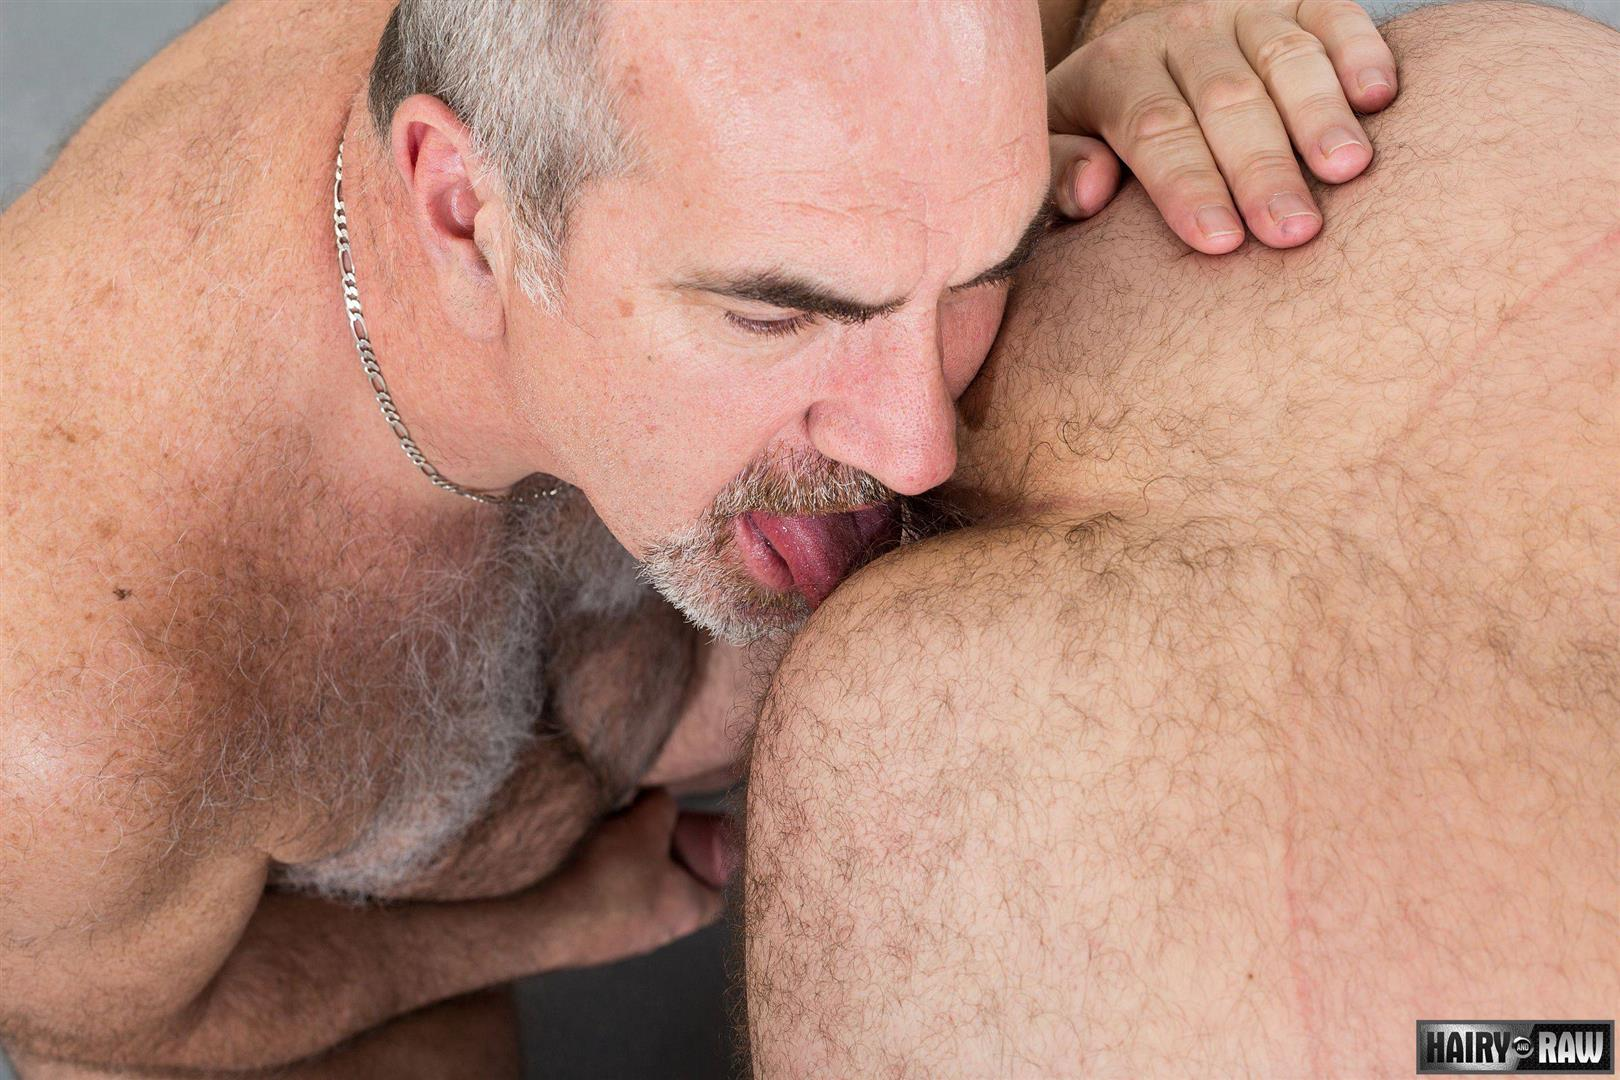 Mature gay hairy raw sex movie xxx